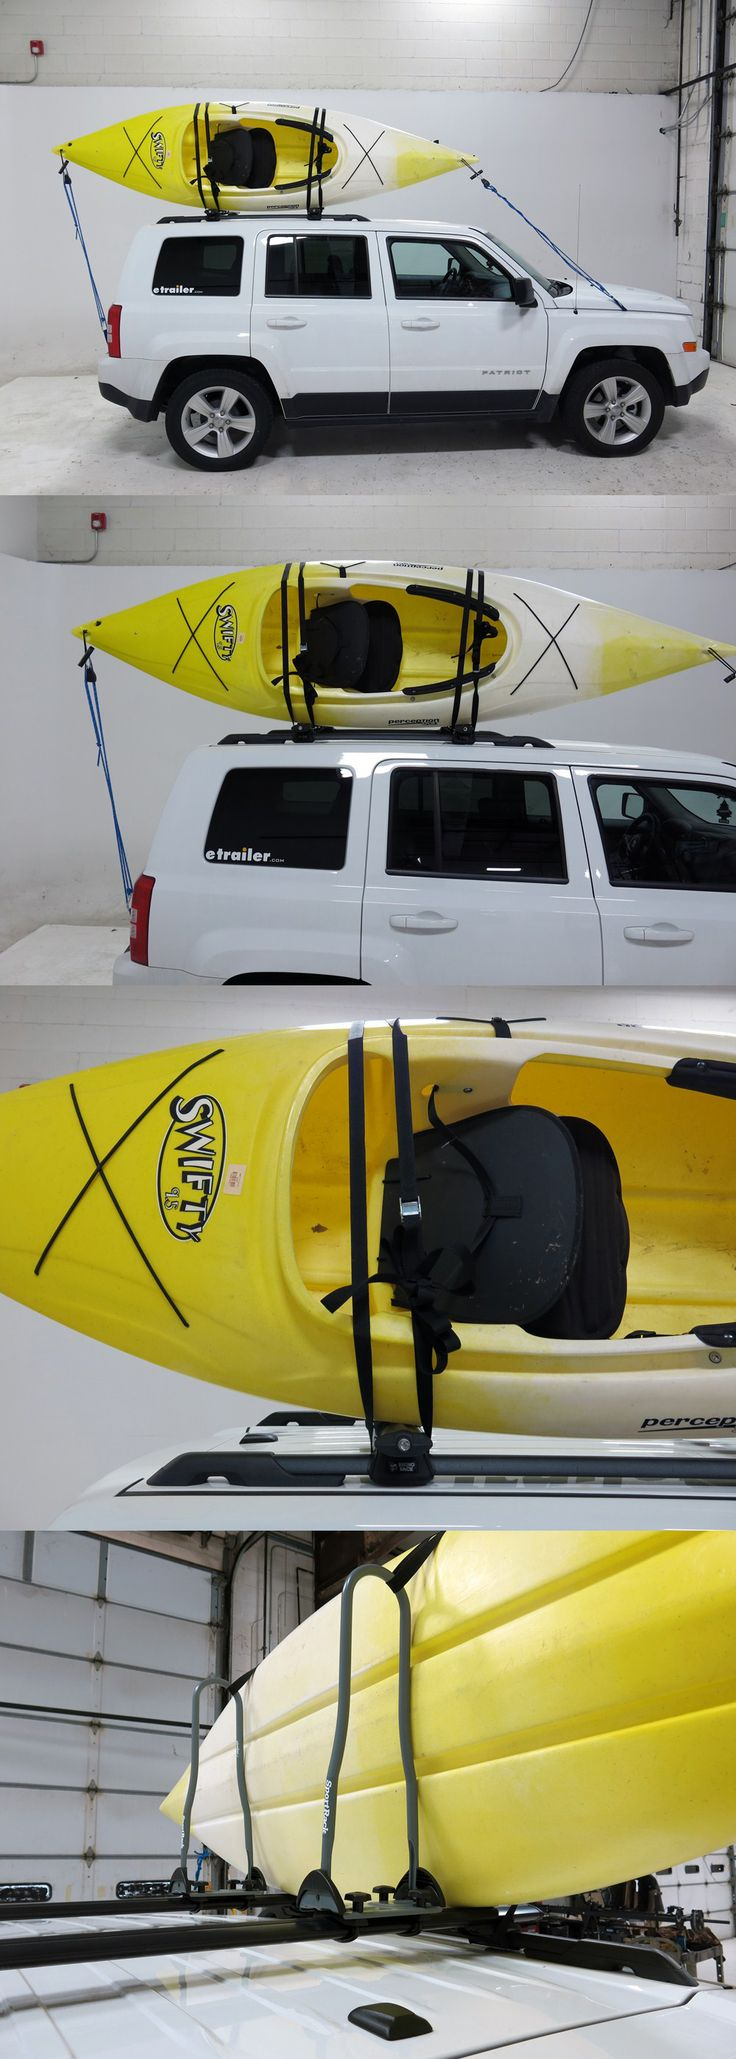 Need inspiration and ideas for transporting your kayaks to and from the river or lake? These Sport Rack Kayak Carriers are awesome for the job! Post-style carrier provides tie-down points and vertical supports that leave room for more gear on the roof! To investigate these accessories further follow the link!